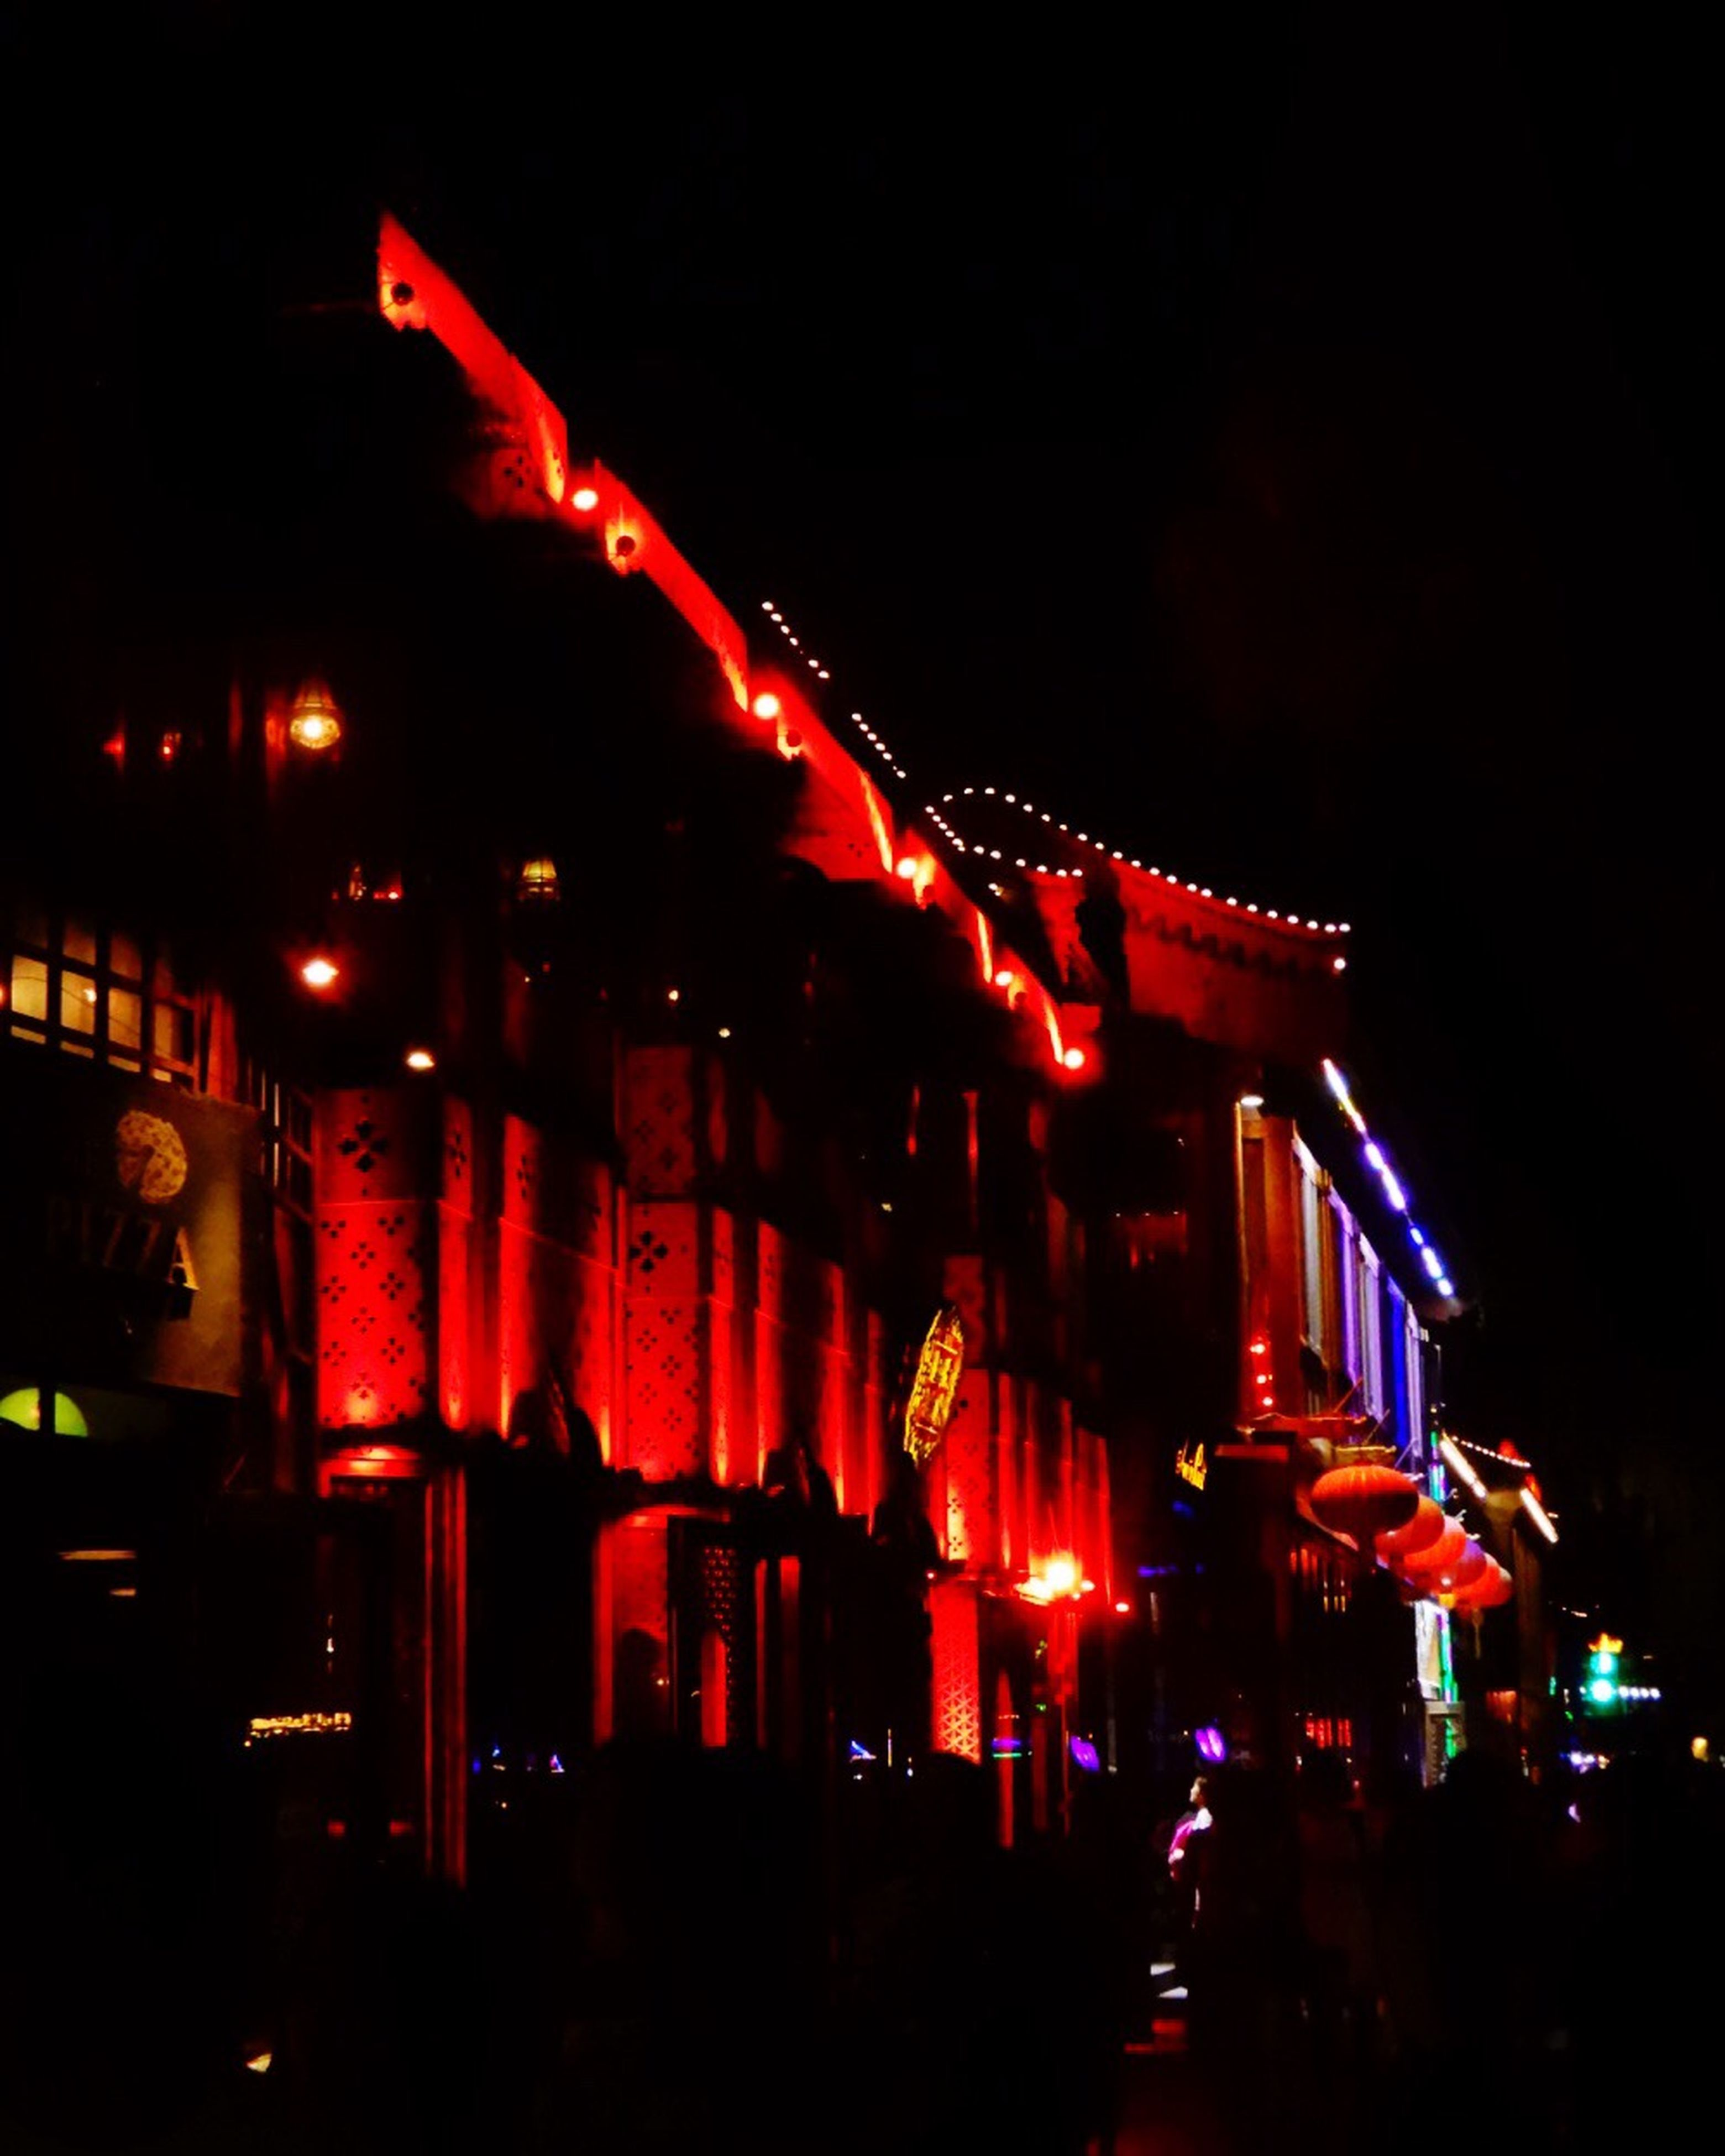 illuminated, night, red, outdoors, sky, built structure, no people, architecture, building exterior, nature